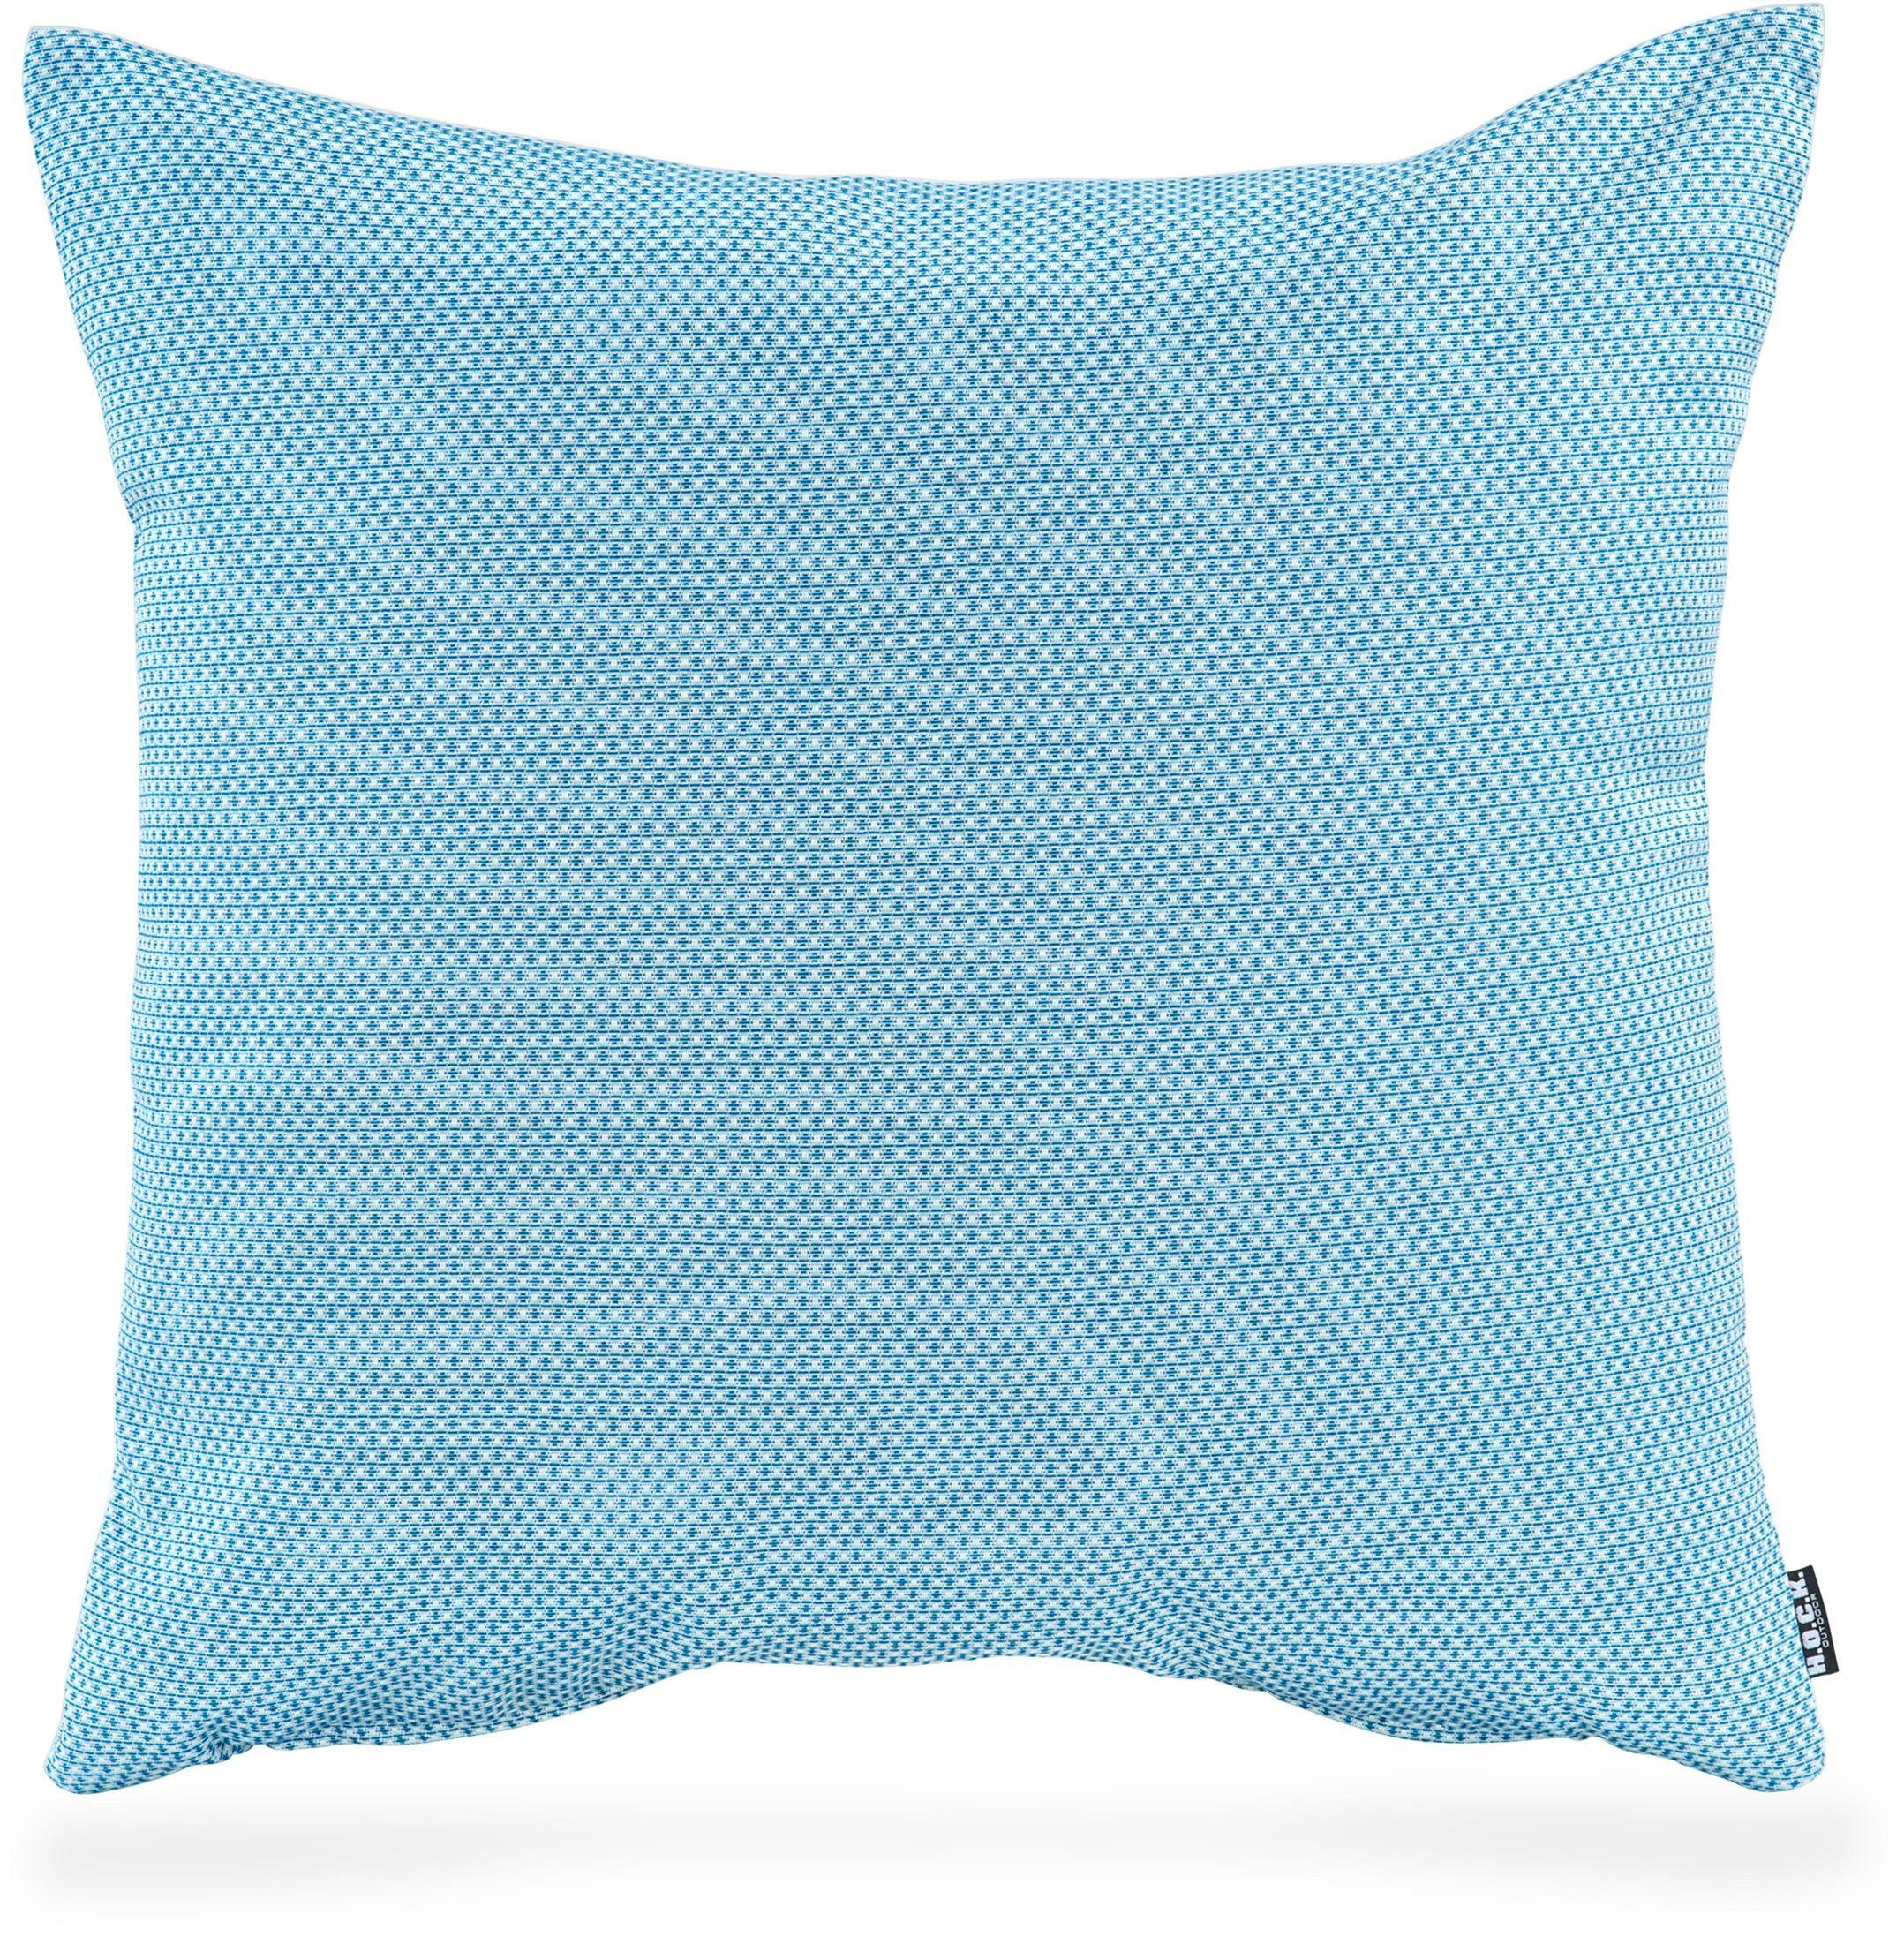 Hock Outdoor-Kissen »Gian blue No 66«, 50/50 cm